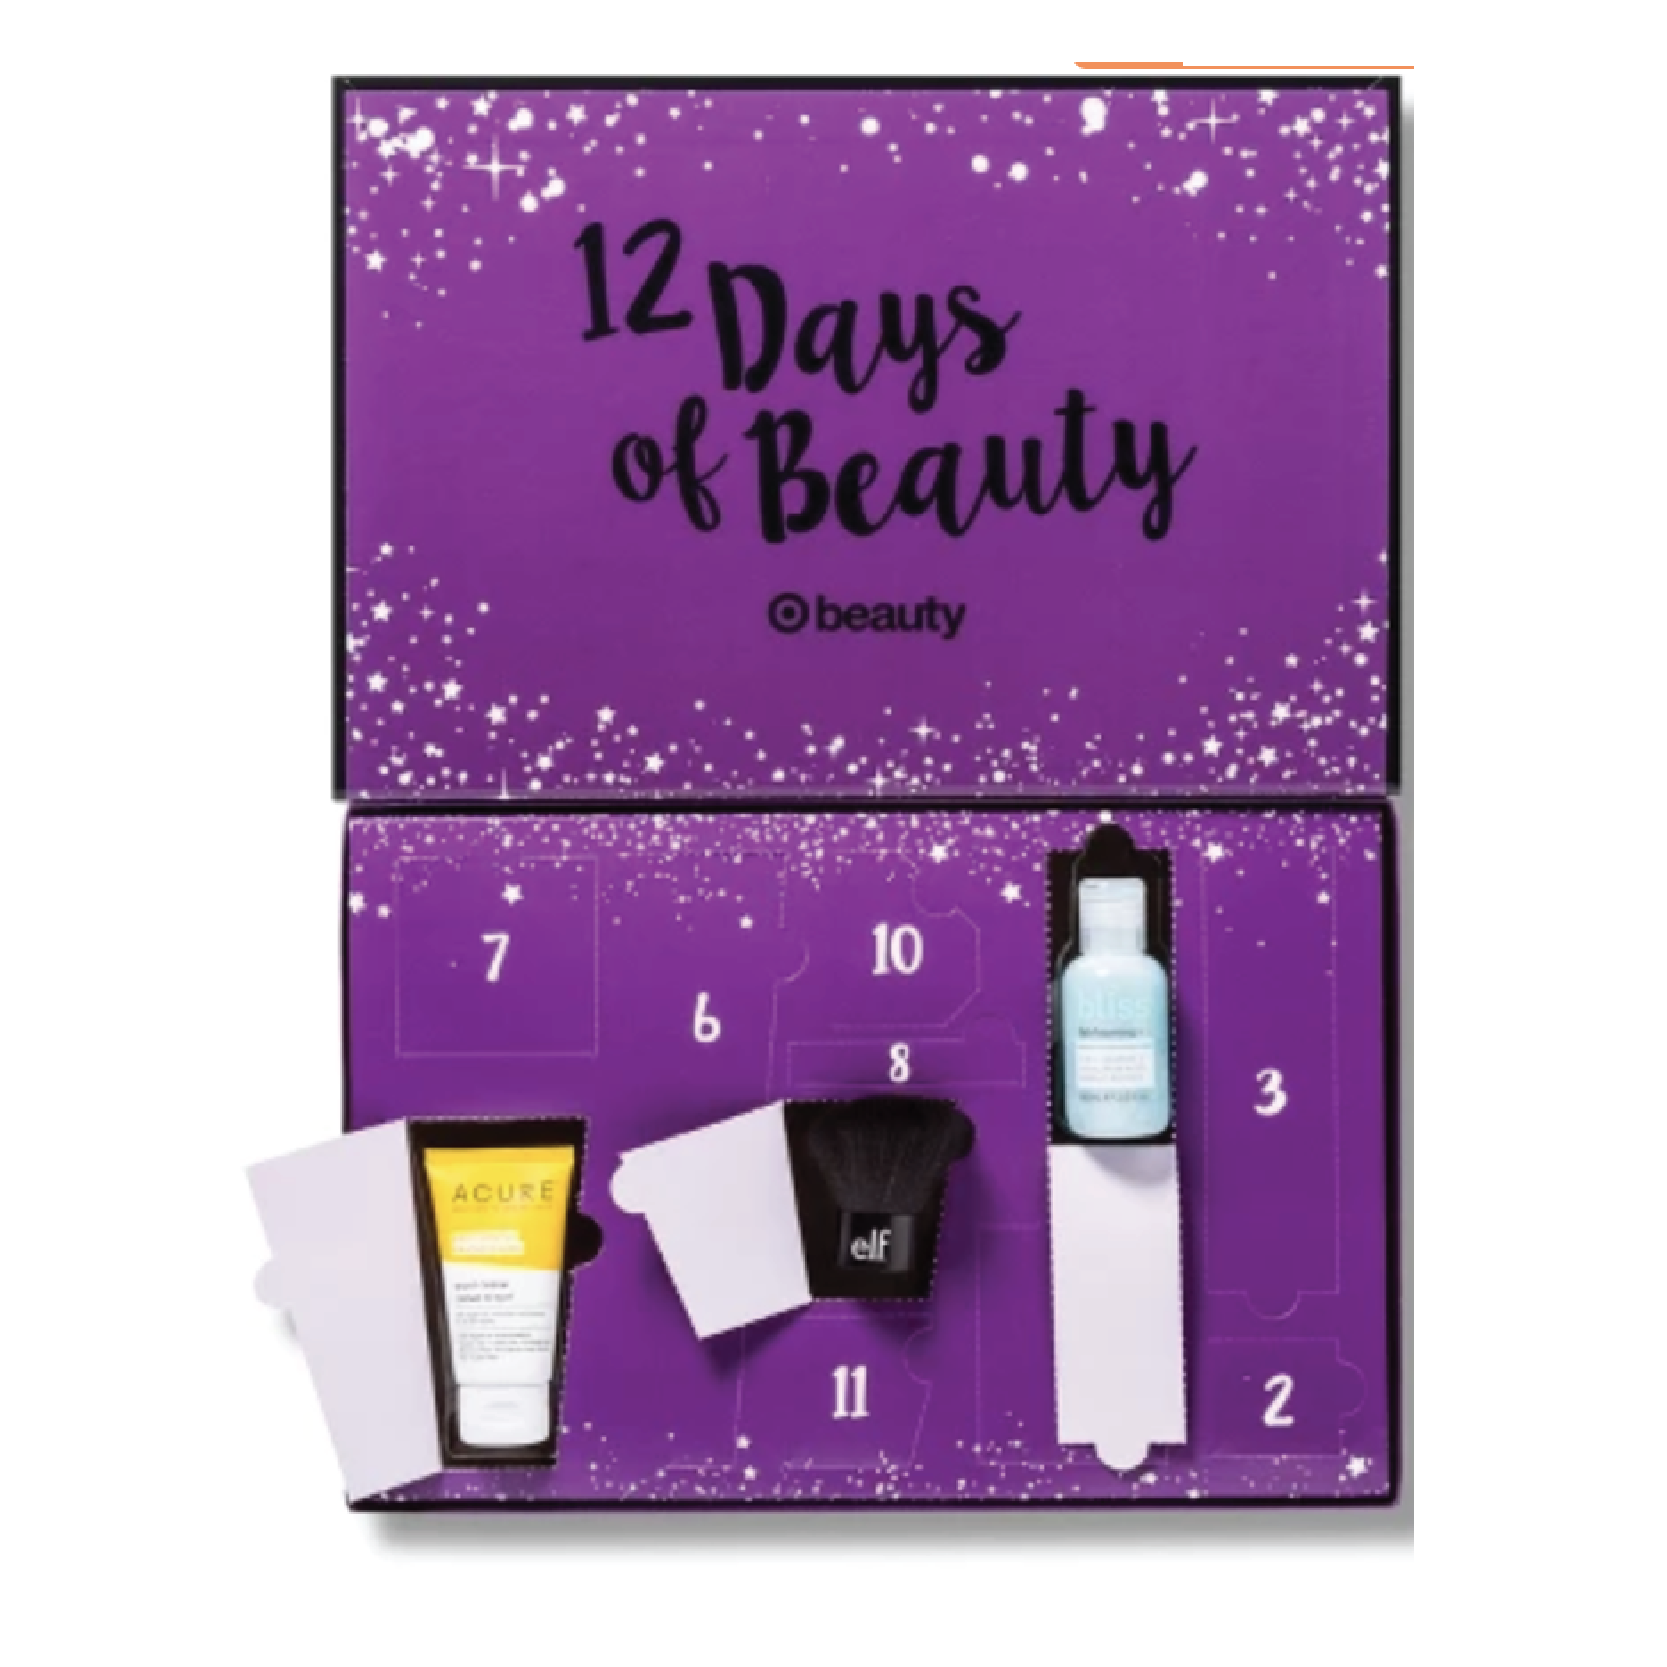 Target Beauty Box Beauty Advent Calendar - $19.99 at TargetThis is an amazing option to gift an advent calendar without paying a hefty price.